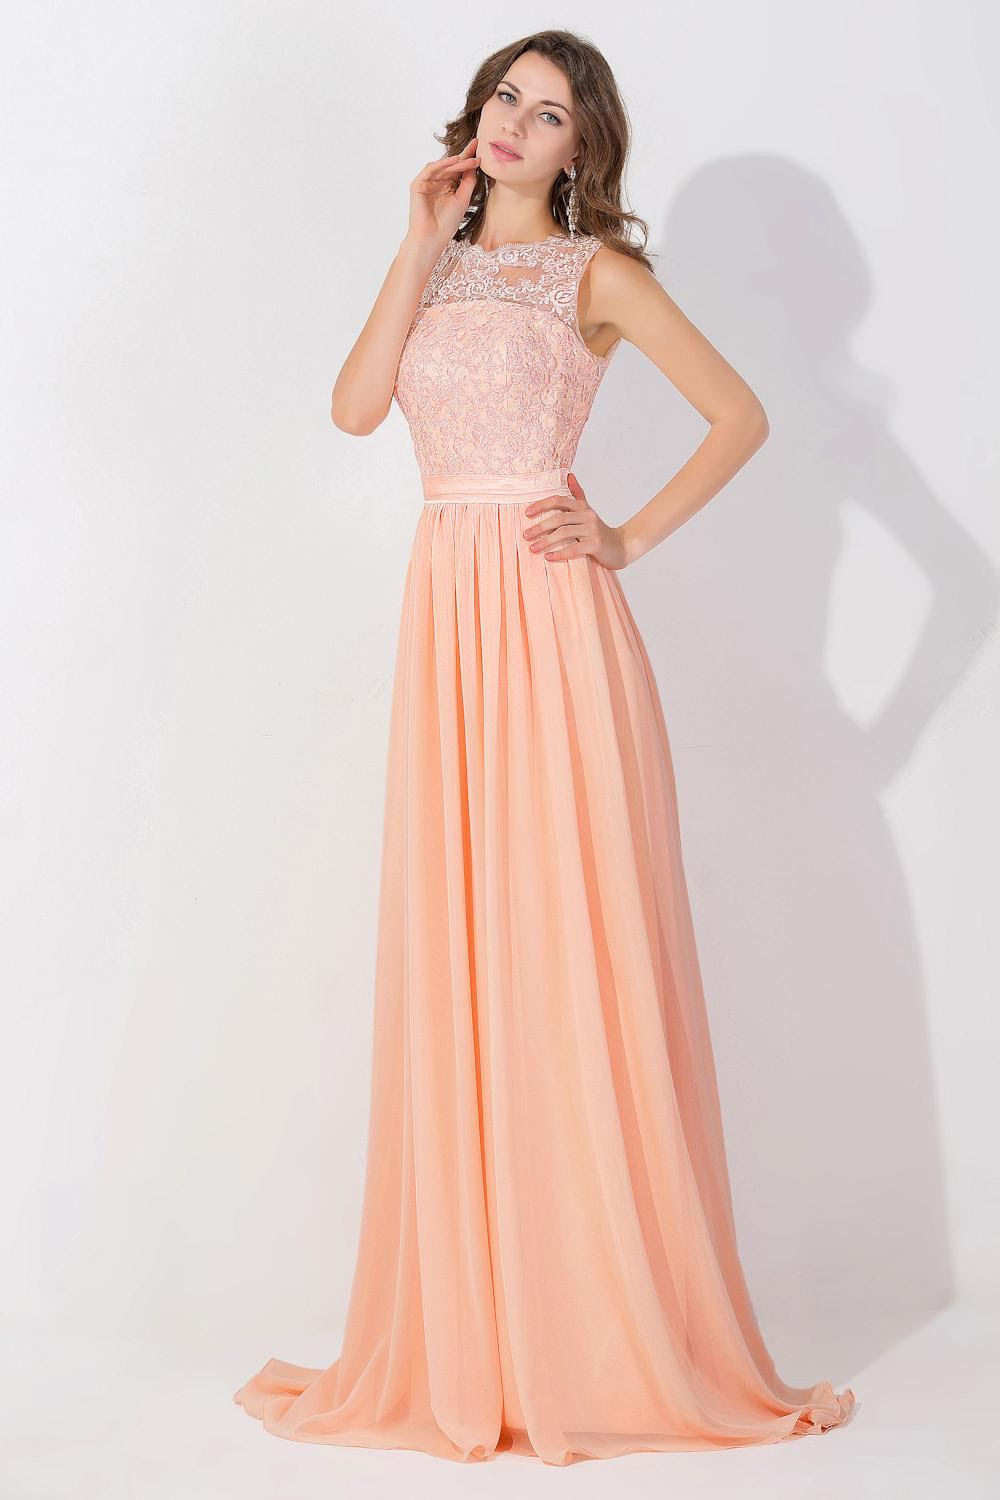 Affordable prom and evening dresses